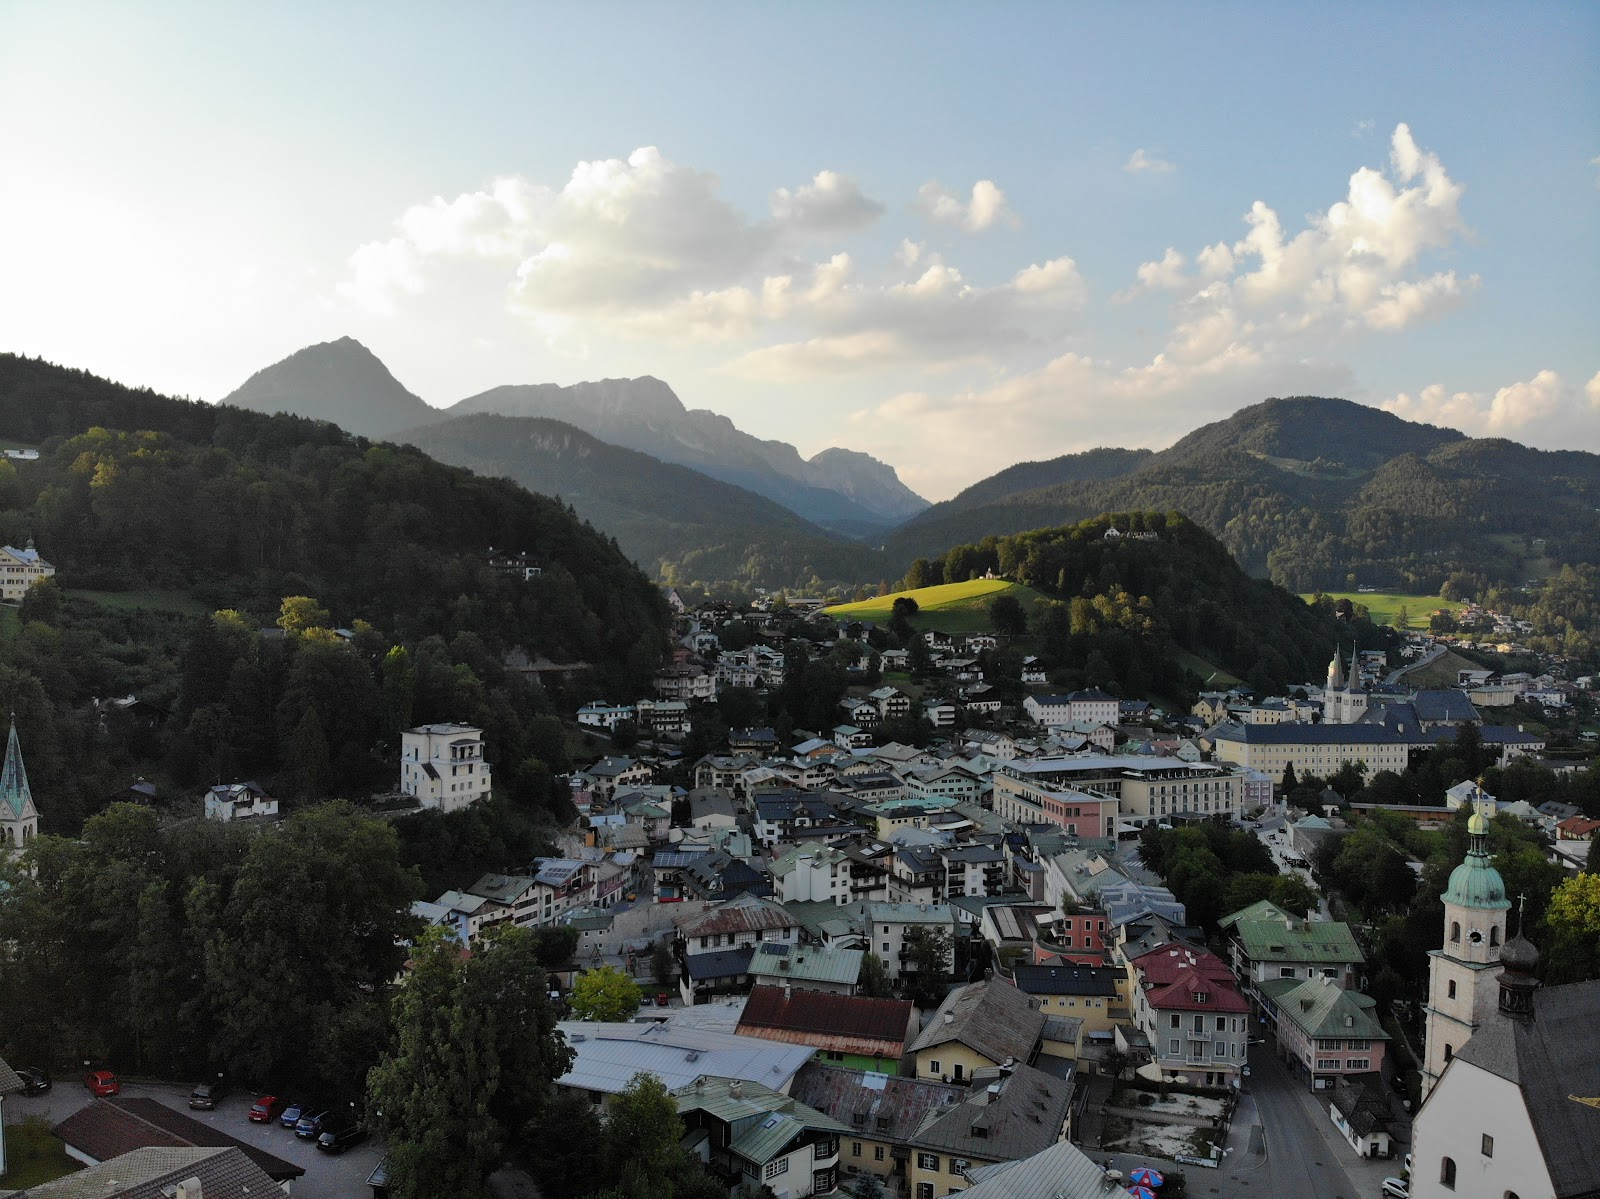 Berchtesgaden, Germany - aeirial dron photo of the town and mountains.